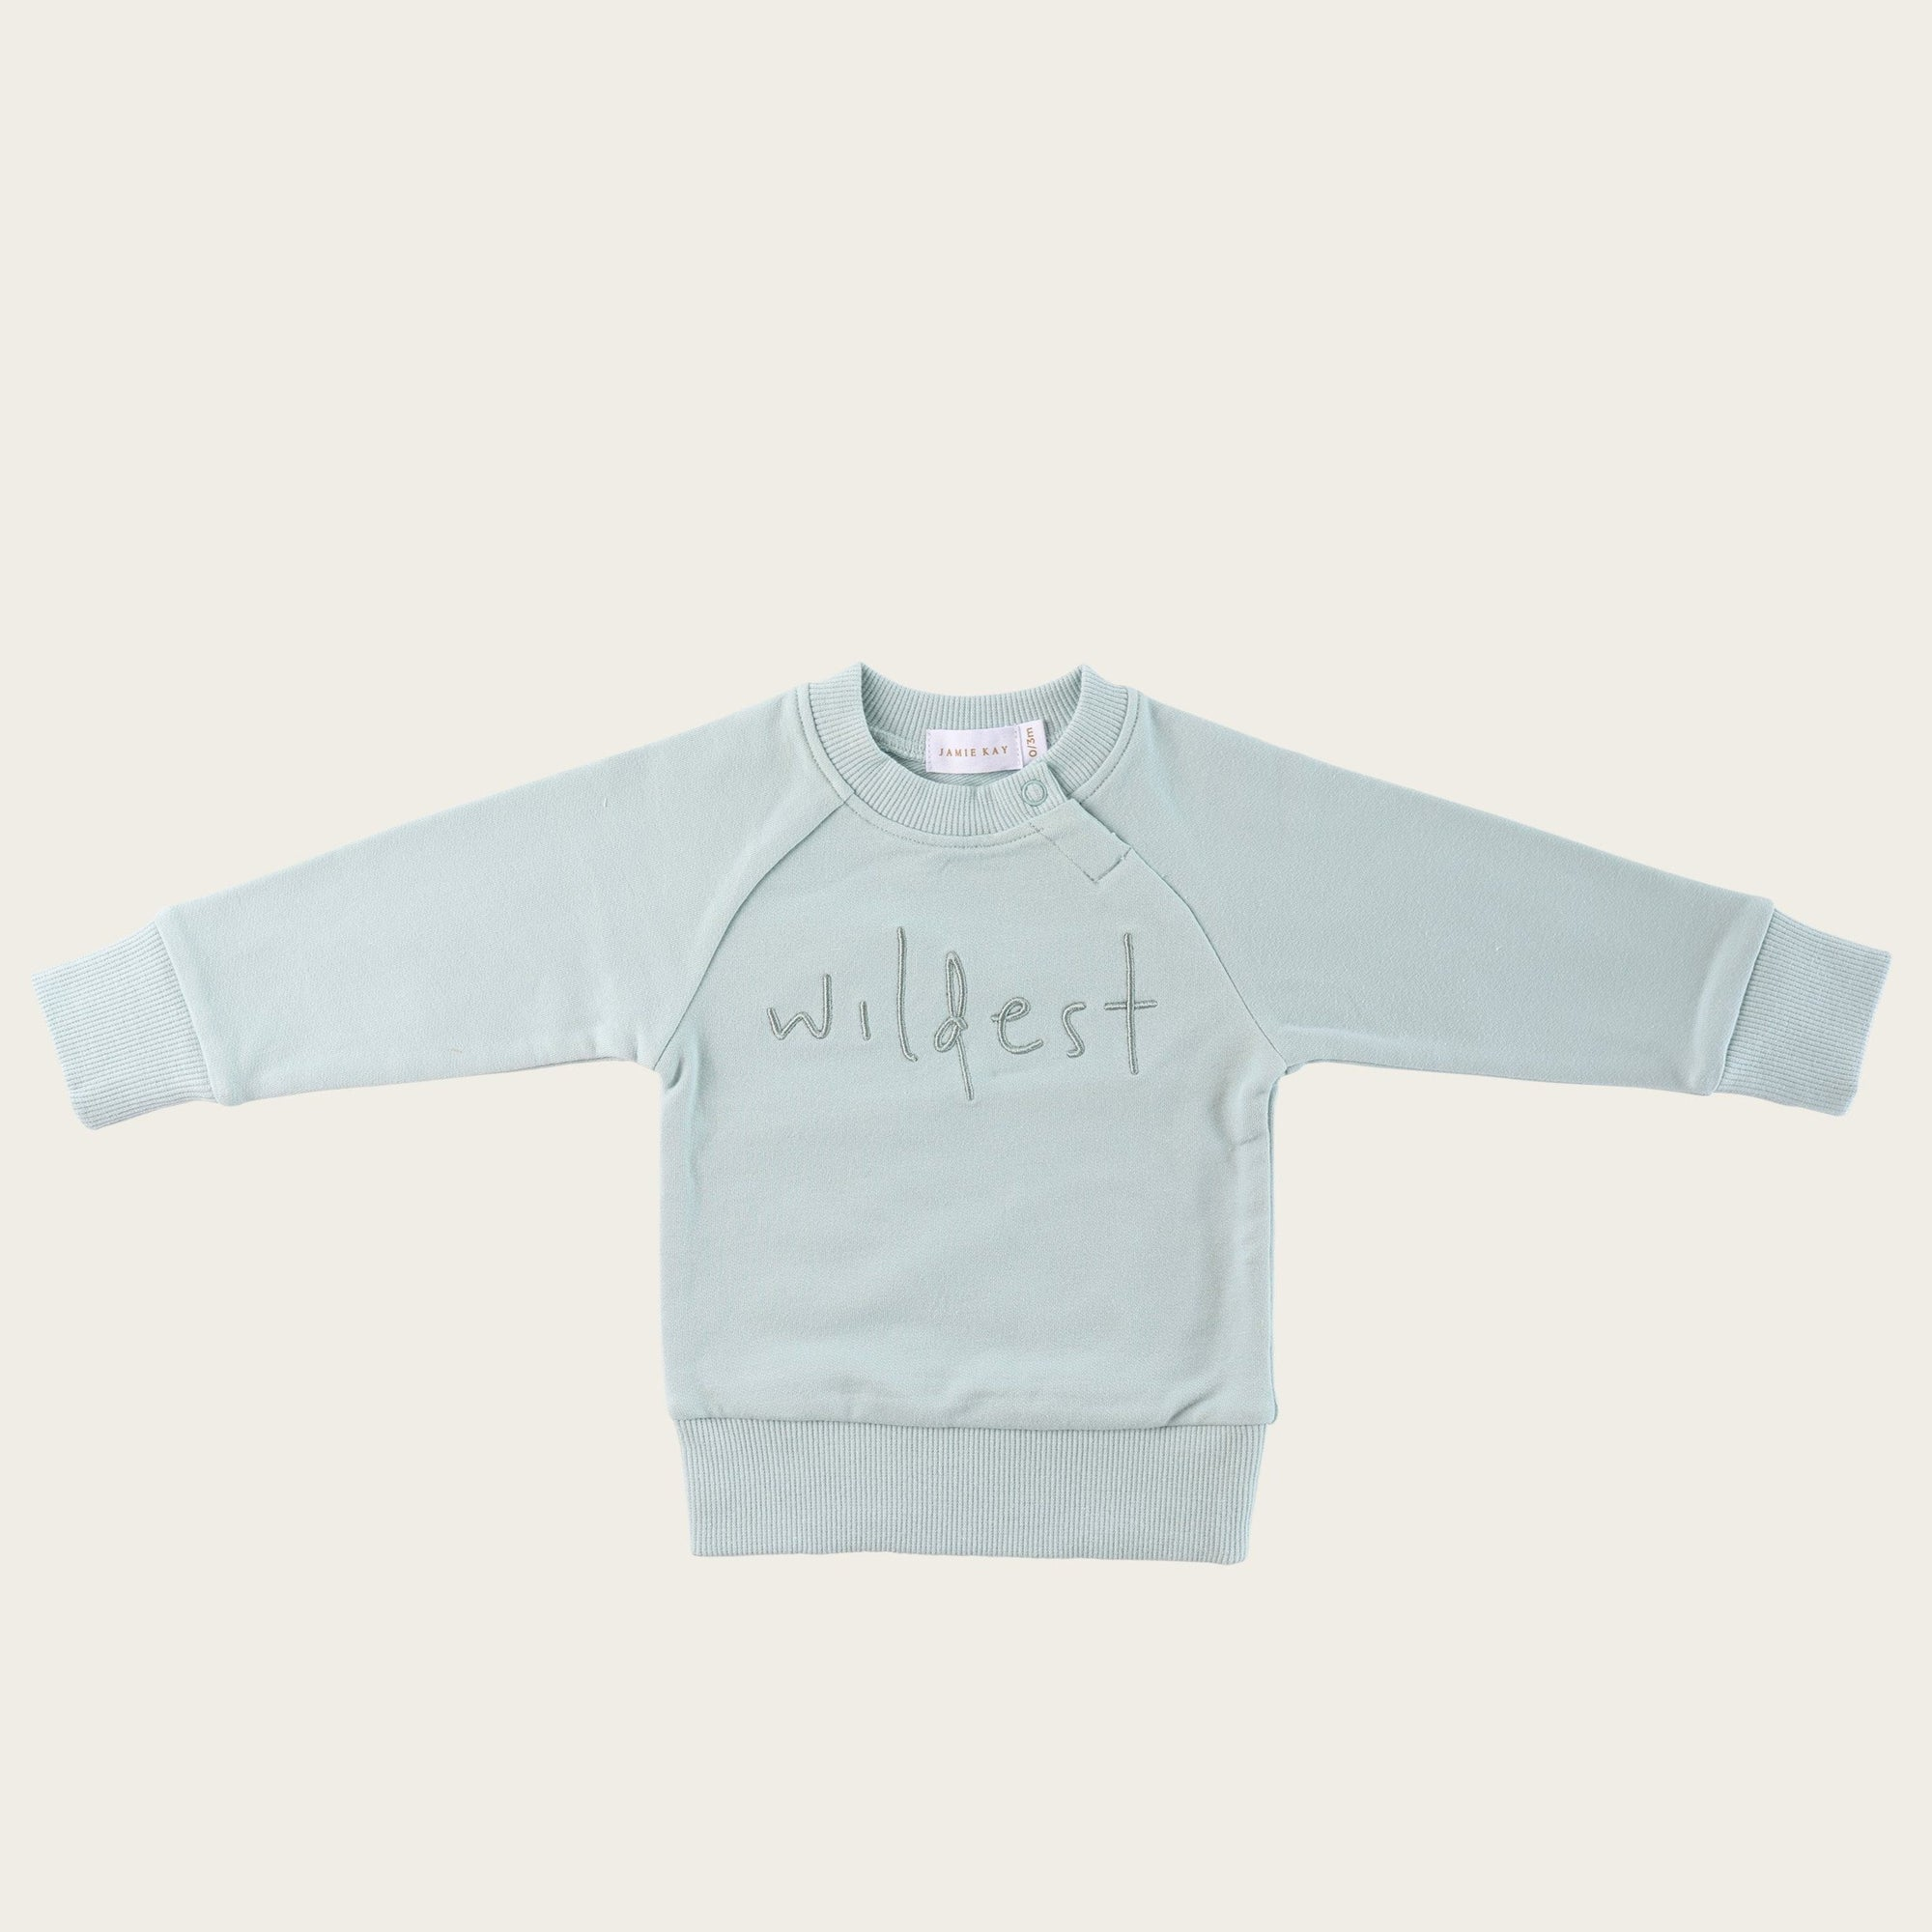 Wildest Sweatshirt (Ether)